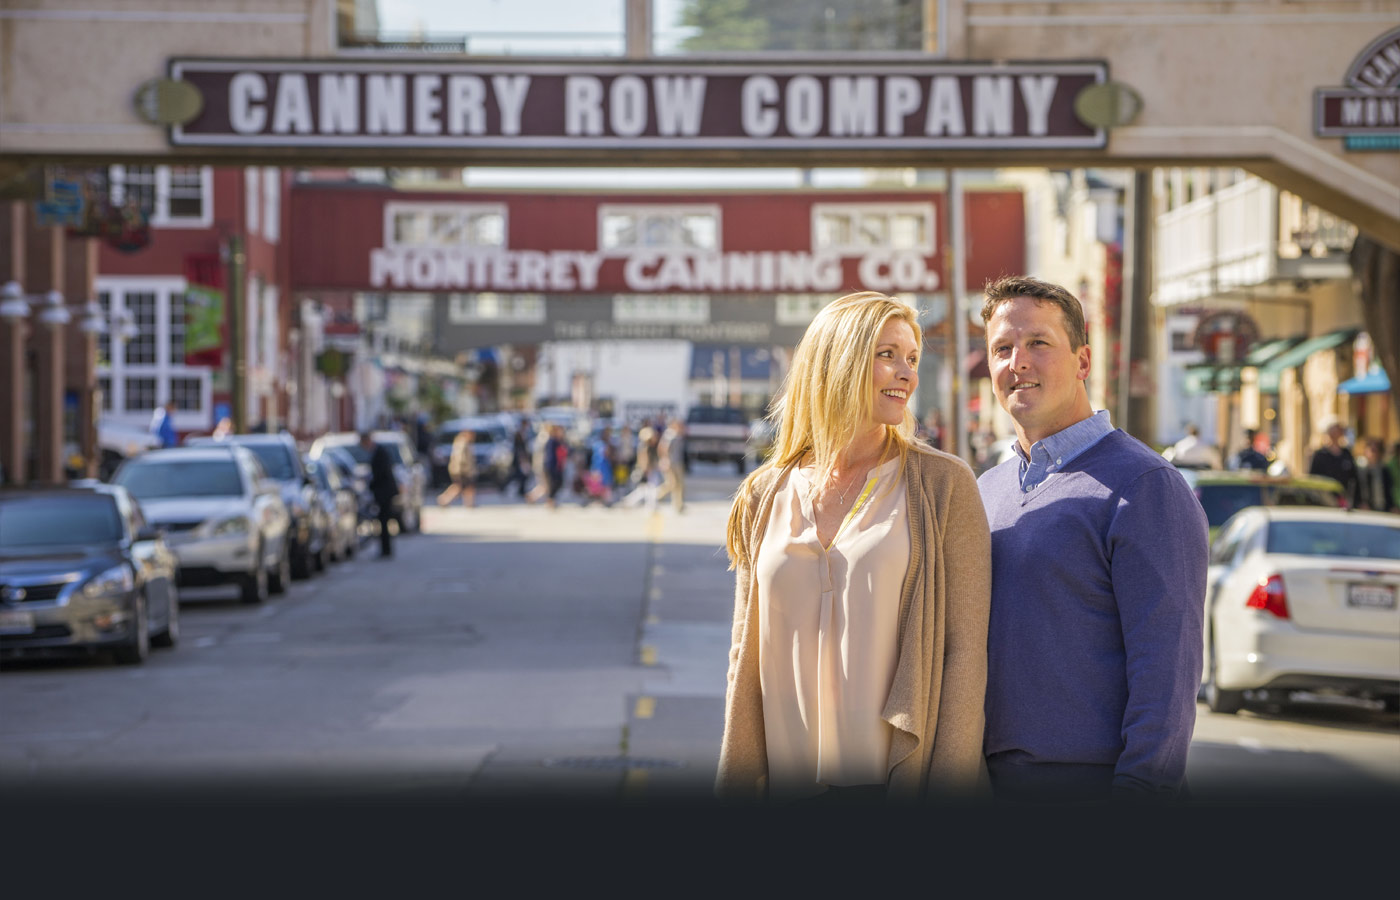 Cannery Row Official Site For Lodging Dining And Shopping